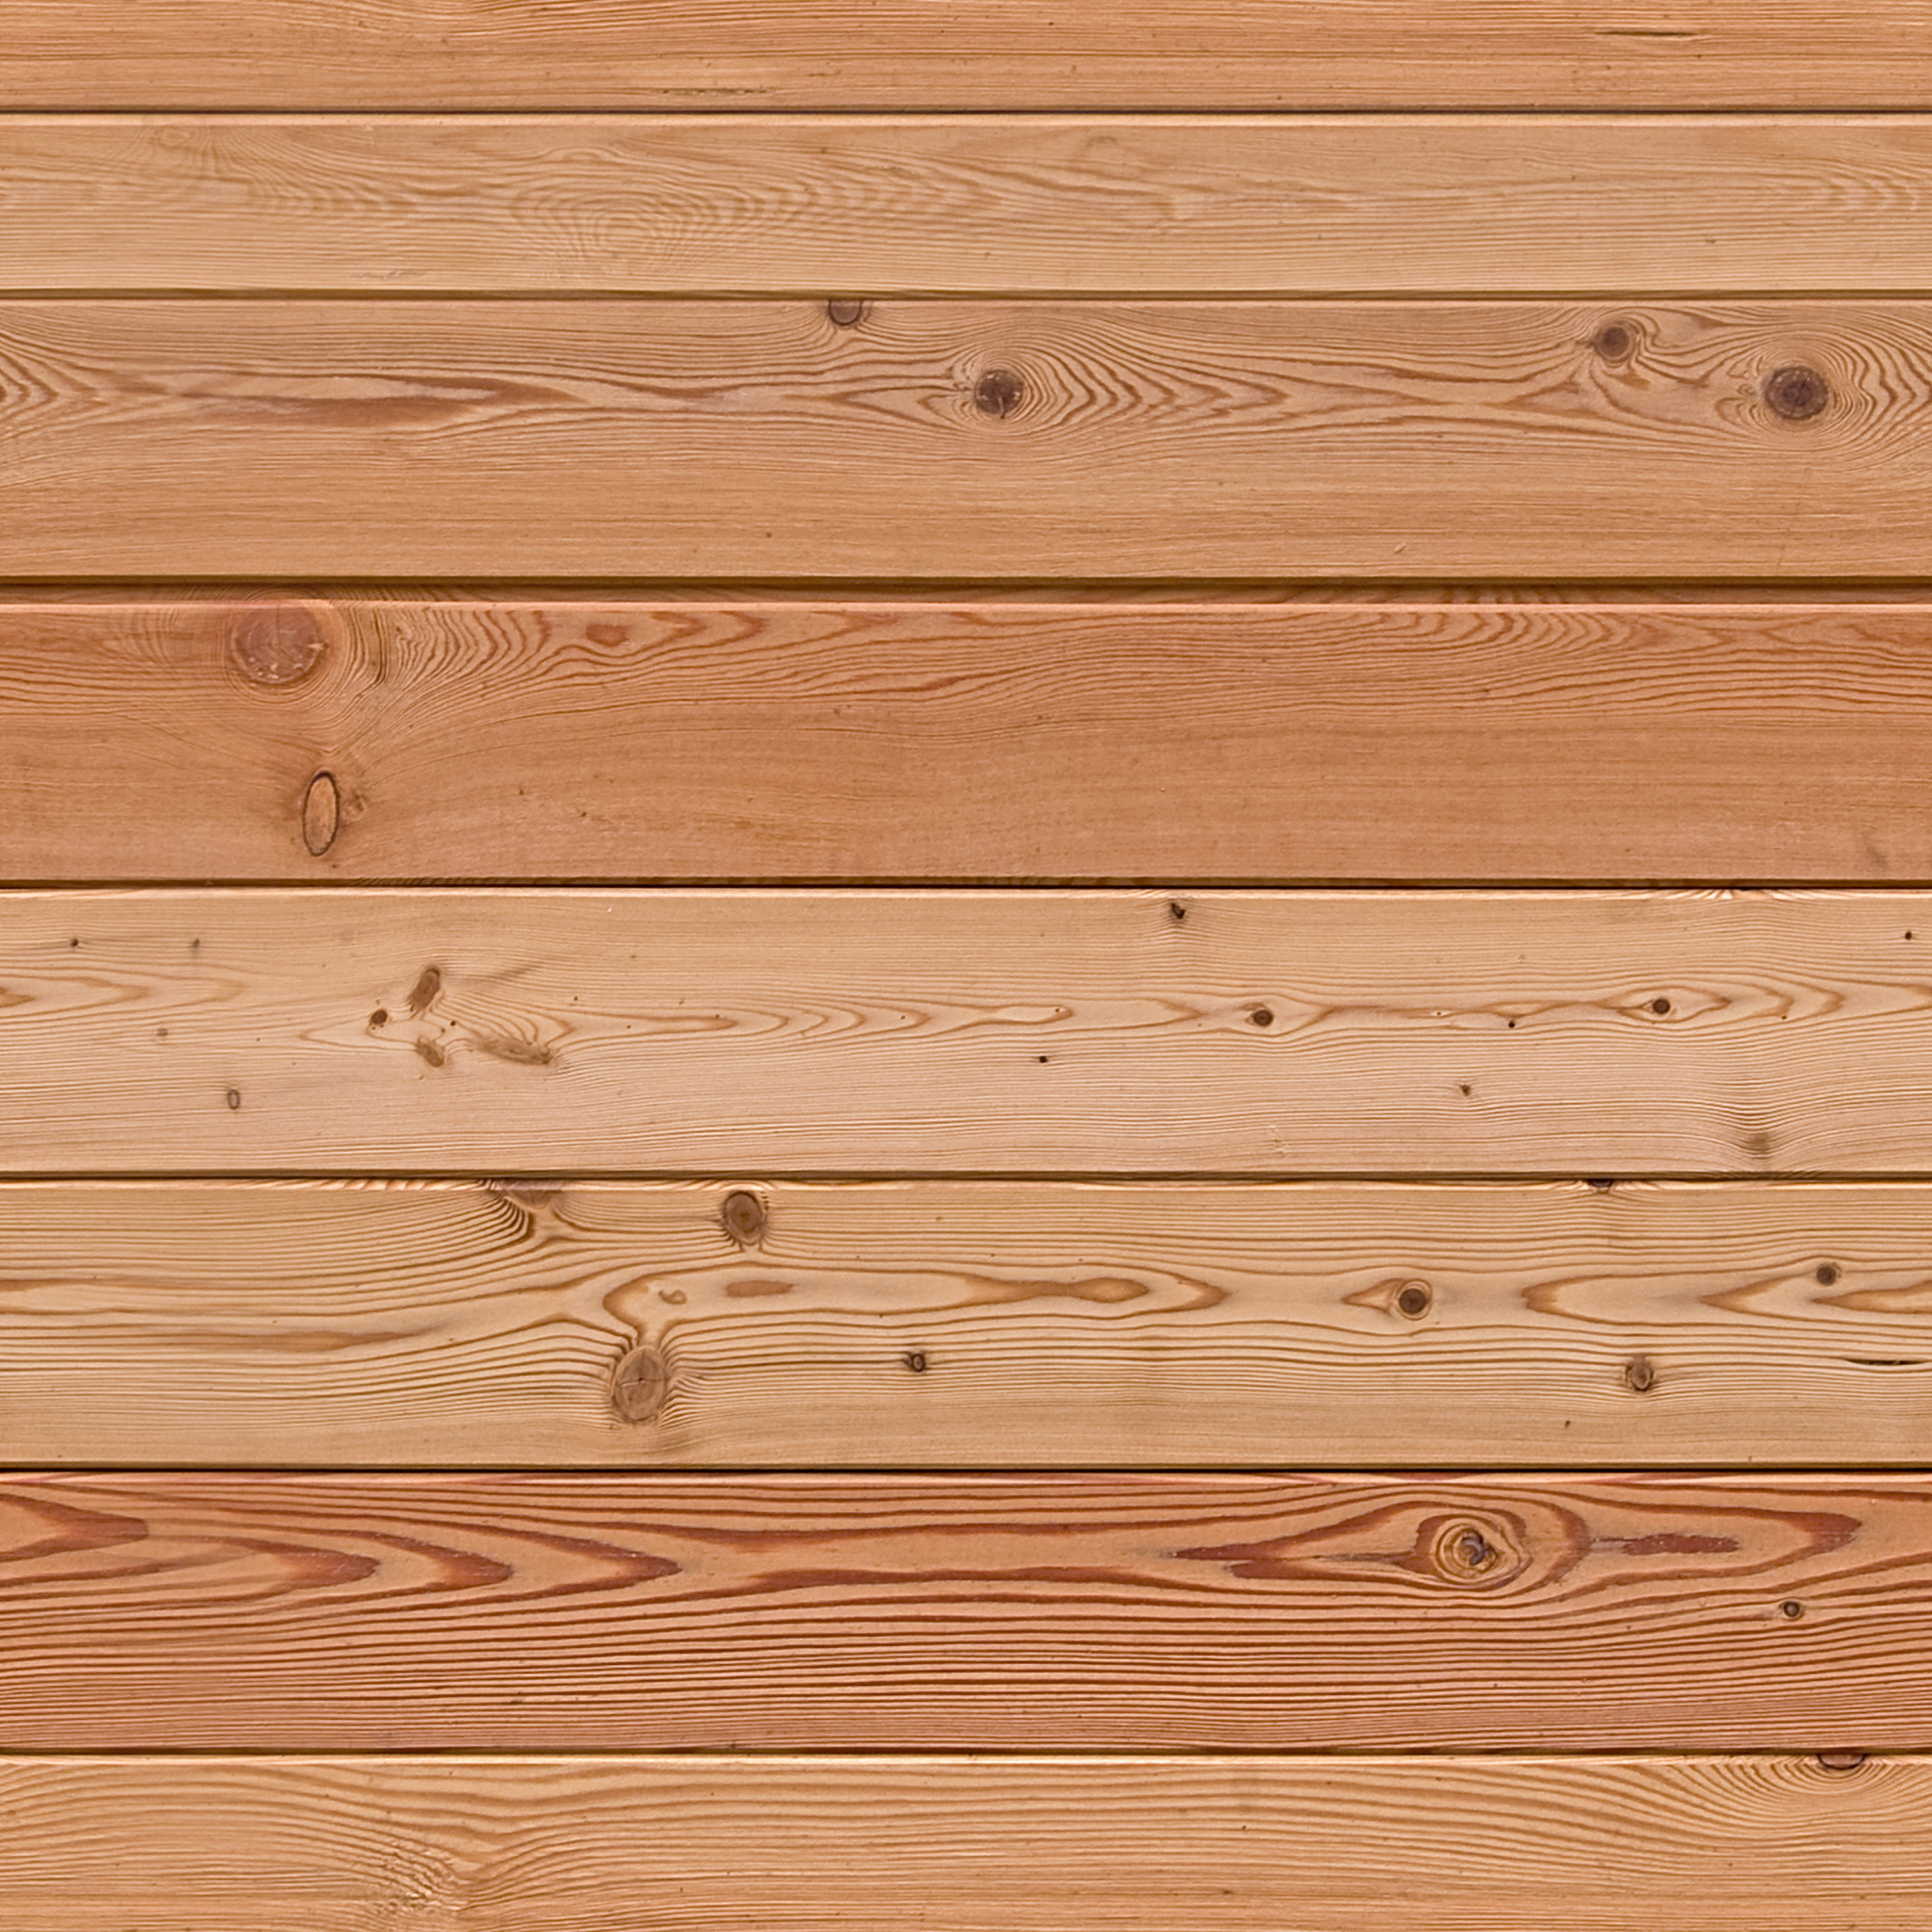 Goodtextures texture artists for Wood plank seamless texture